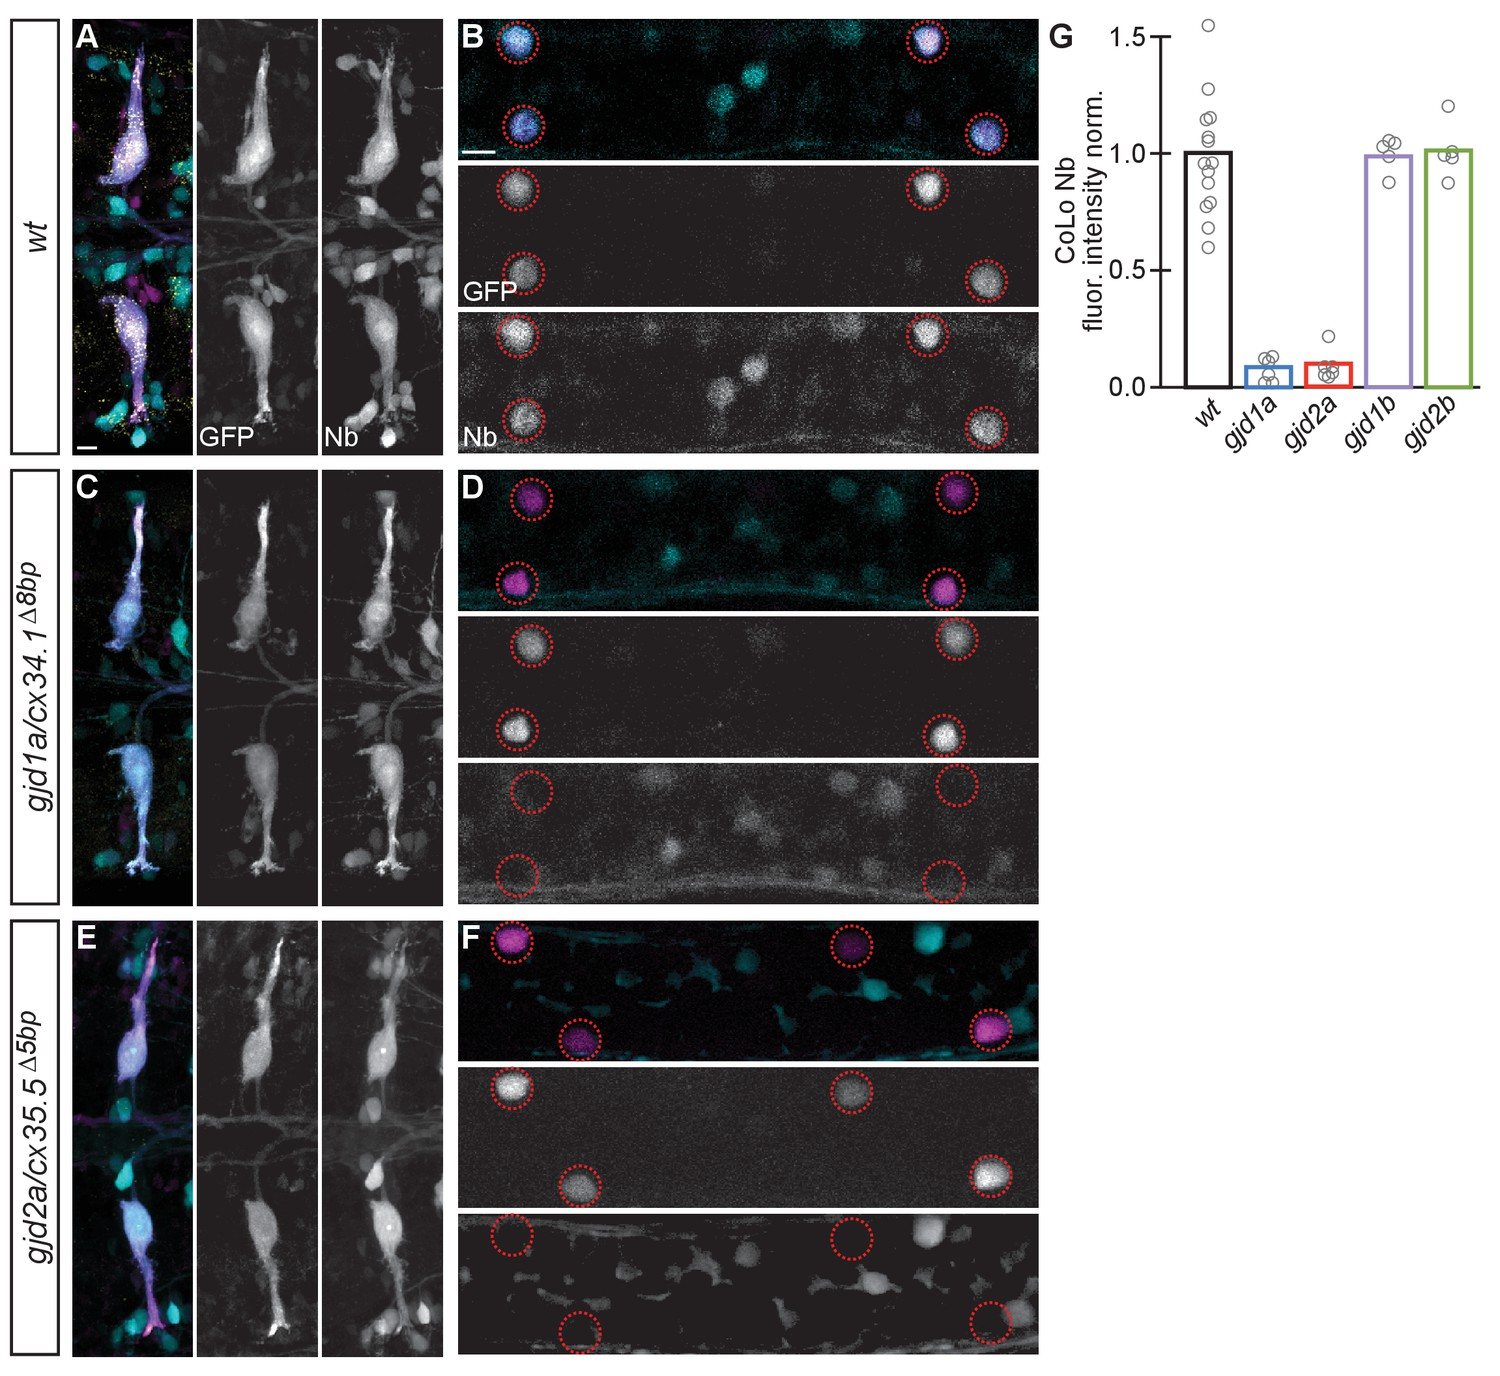 A Genetic Basis For Molecular Asymmetry At Vertebrate Electrical 555 Pin 4 Reset Behavior Test Circuit 1 Synapses Are Functionally Defective In Gjd1a Cx341 And Gjd2a Cx355 Mutants